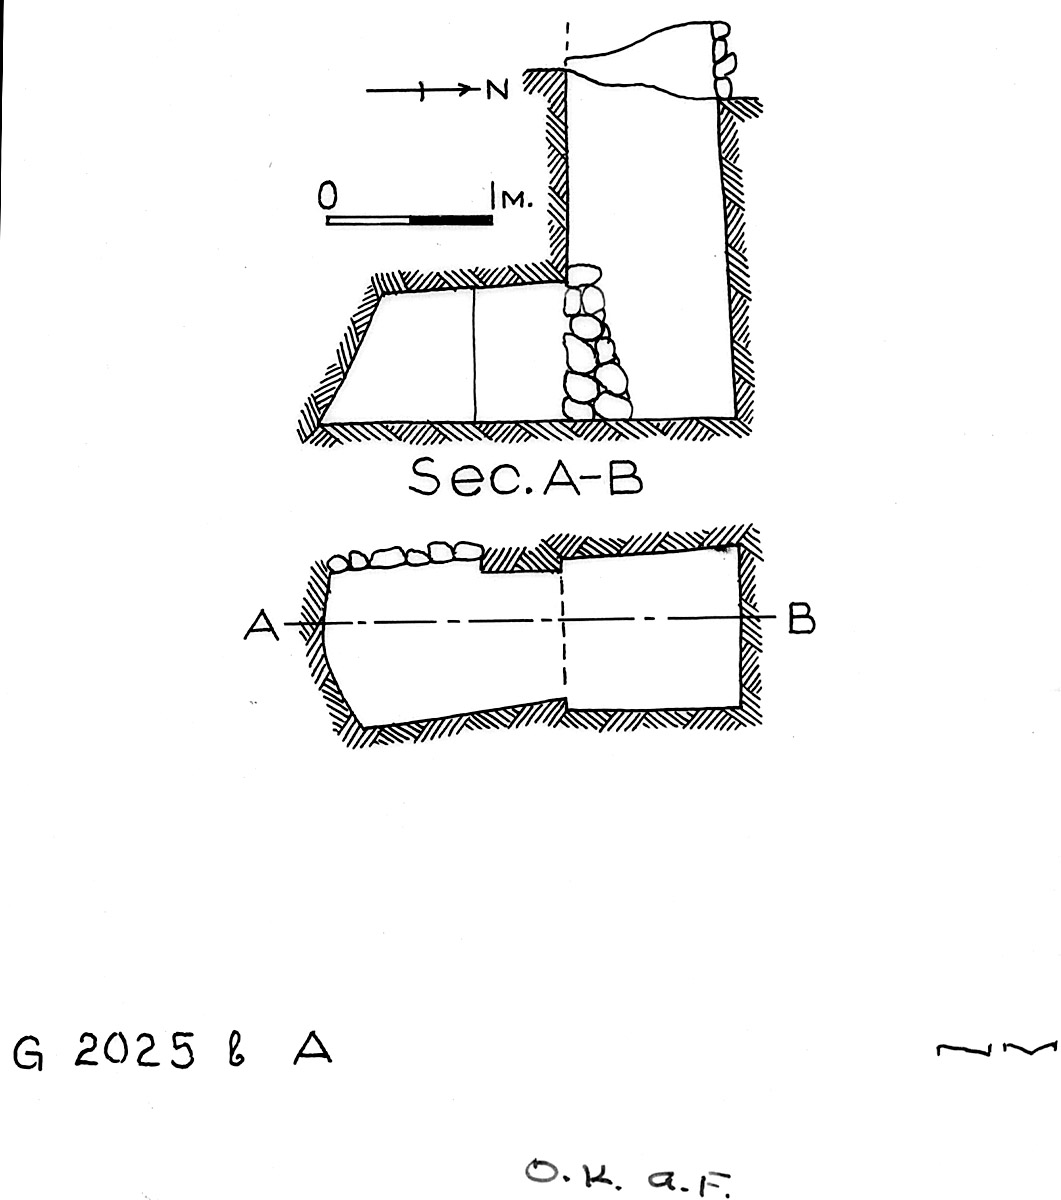 Maps and plans: G 2025b, Shaft A